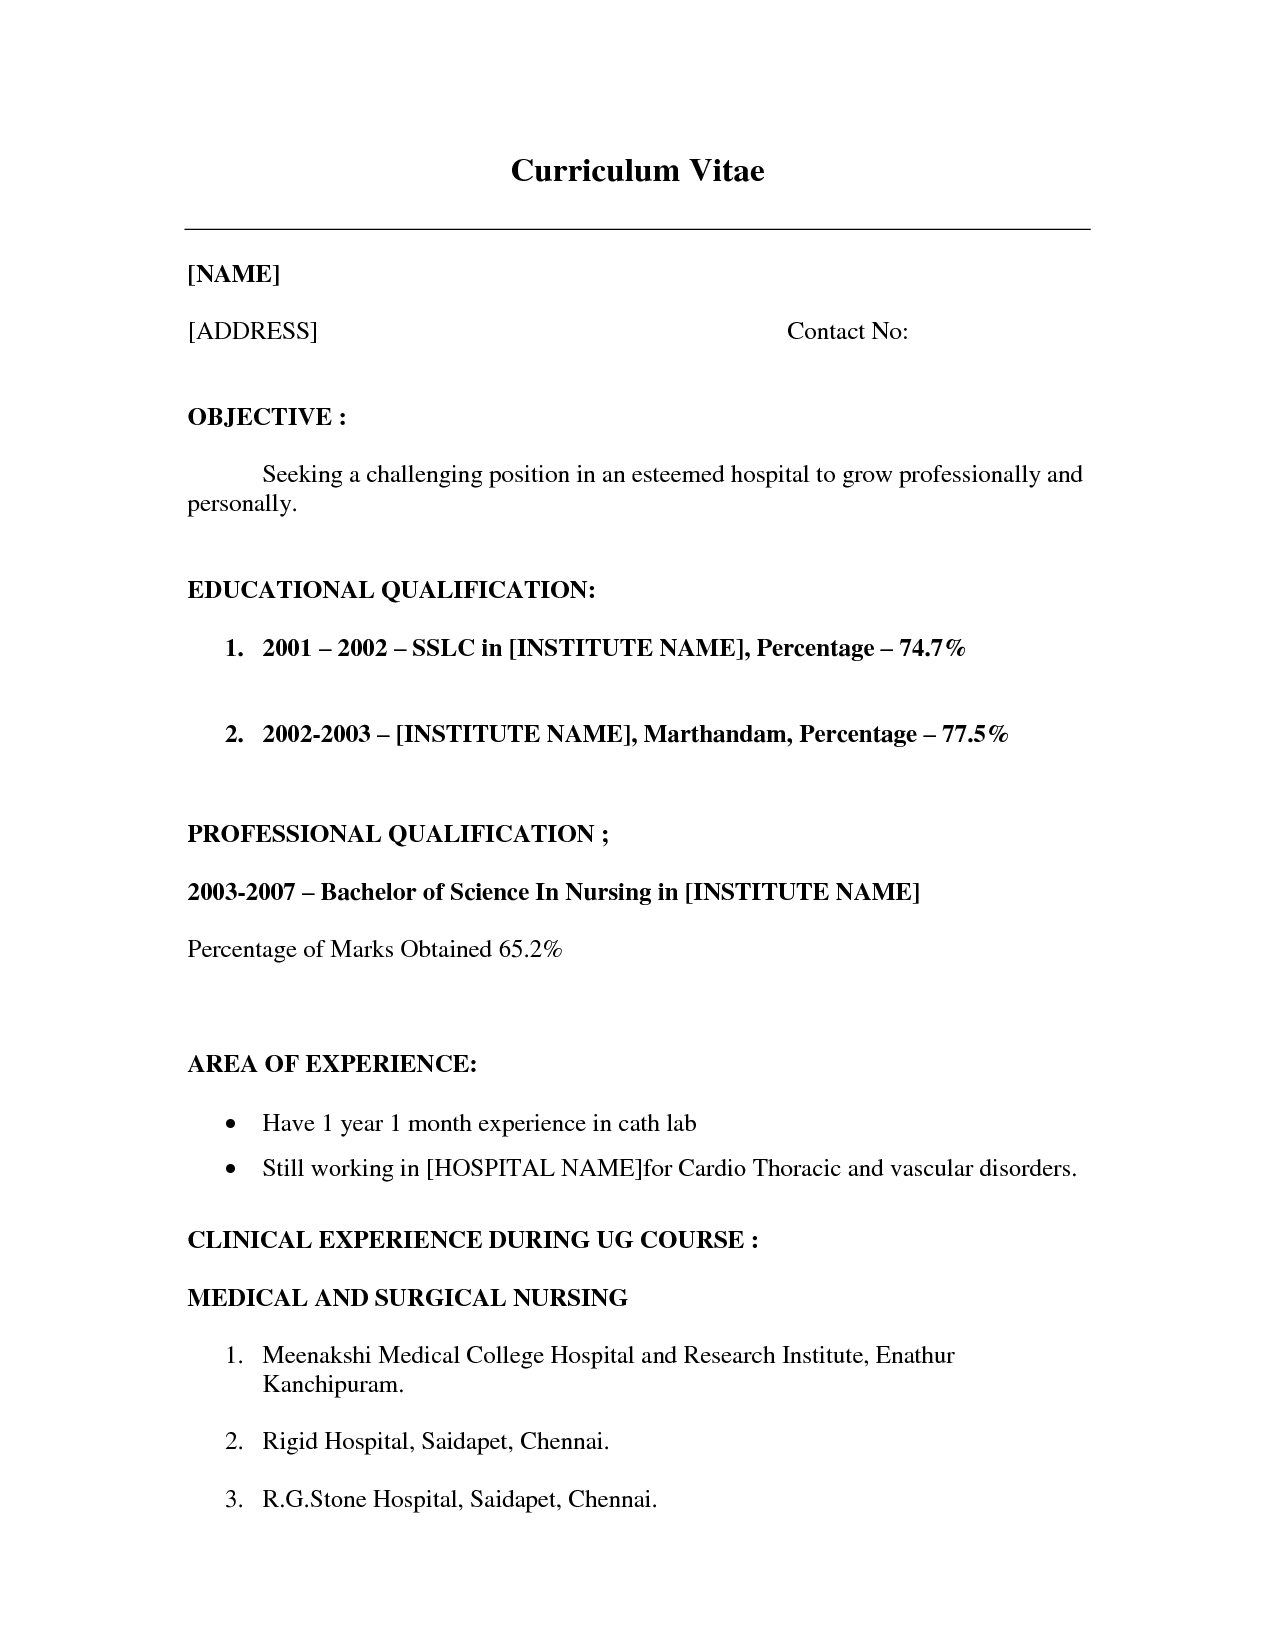 Work Experience Resume Format